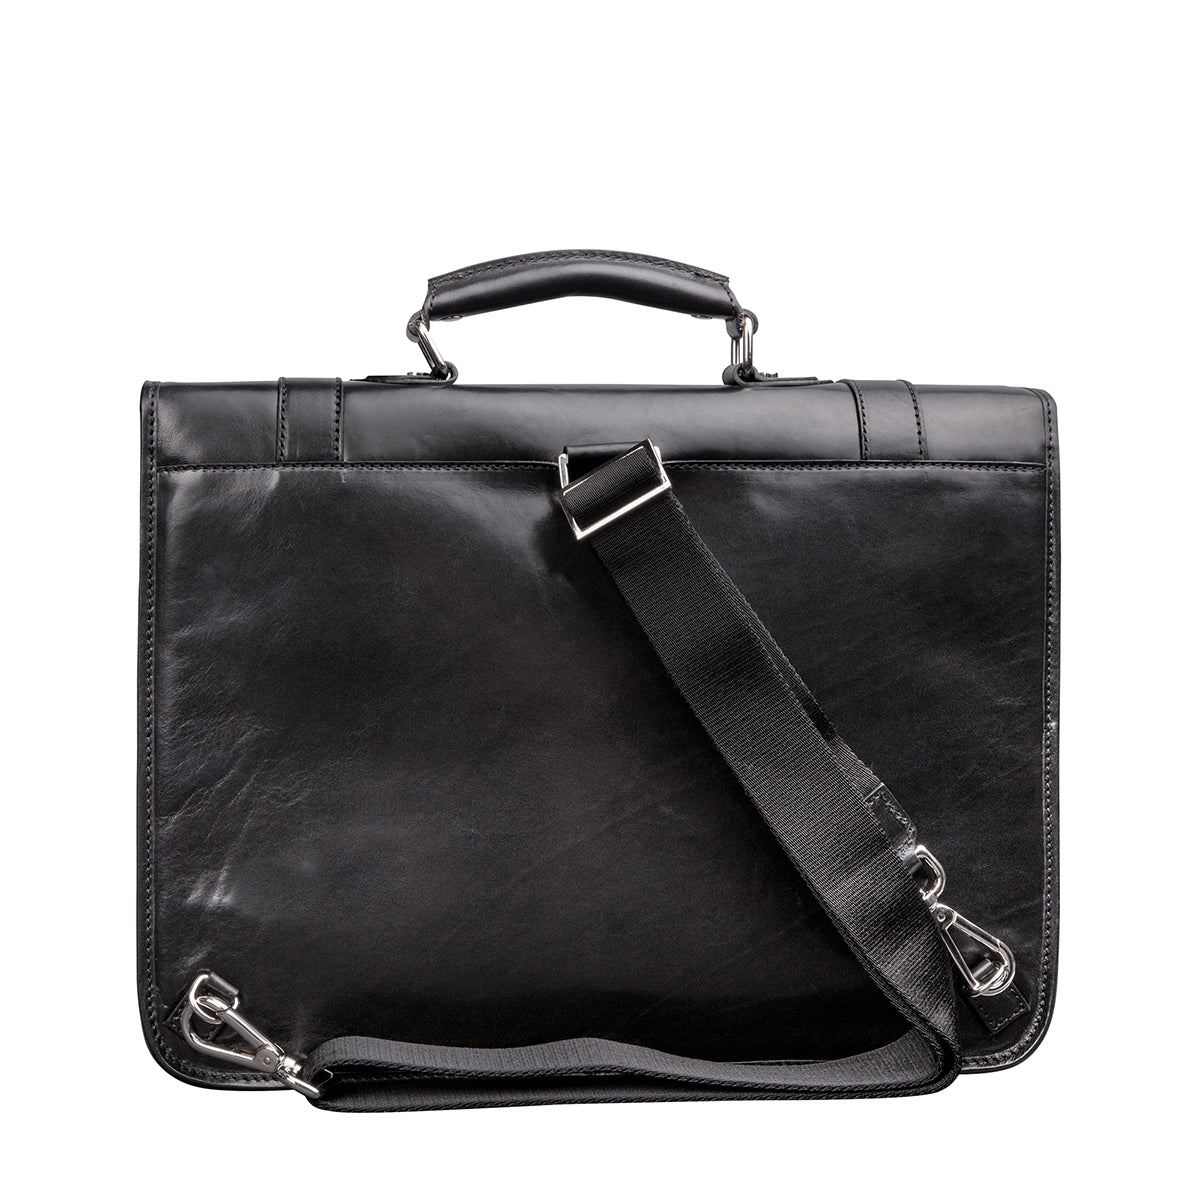 Image 4 of the 'Micheli' Black Veg-Tanned Leather Backpack Briefcase